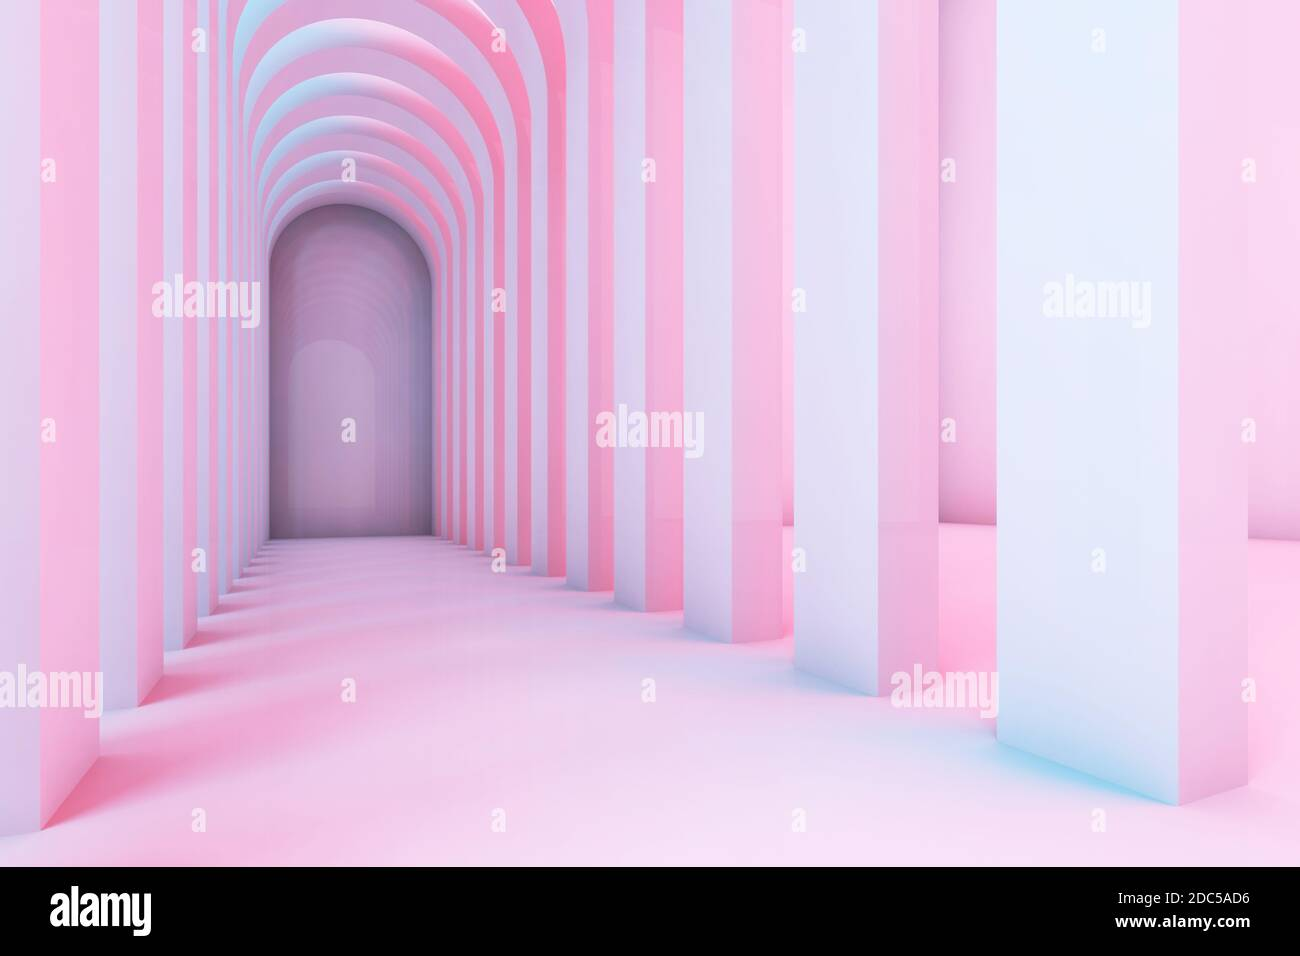 Empty corridor of arches with colorful illumination, abstract interior background. 3d rendering illustration Stock Photo